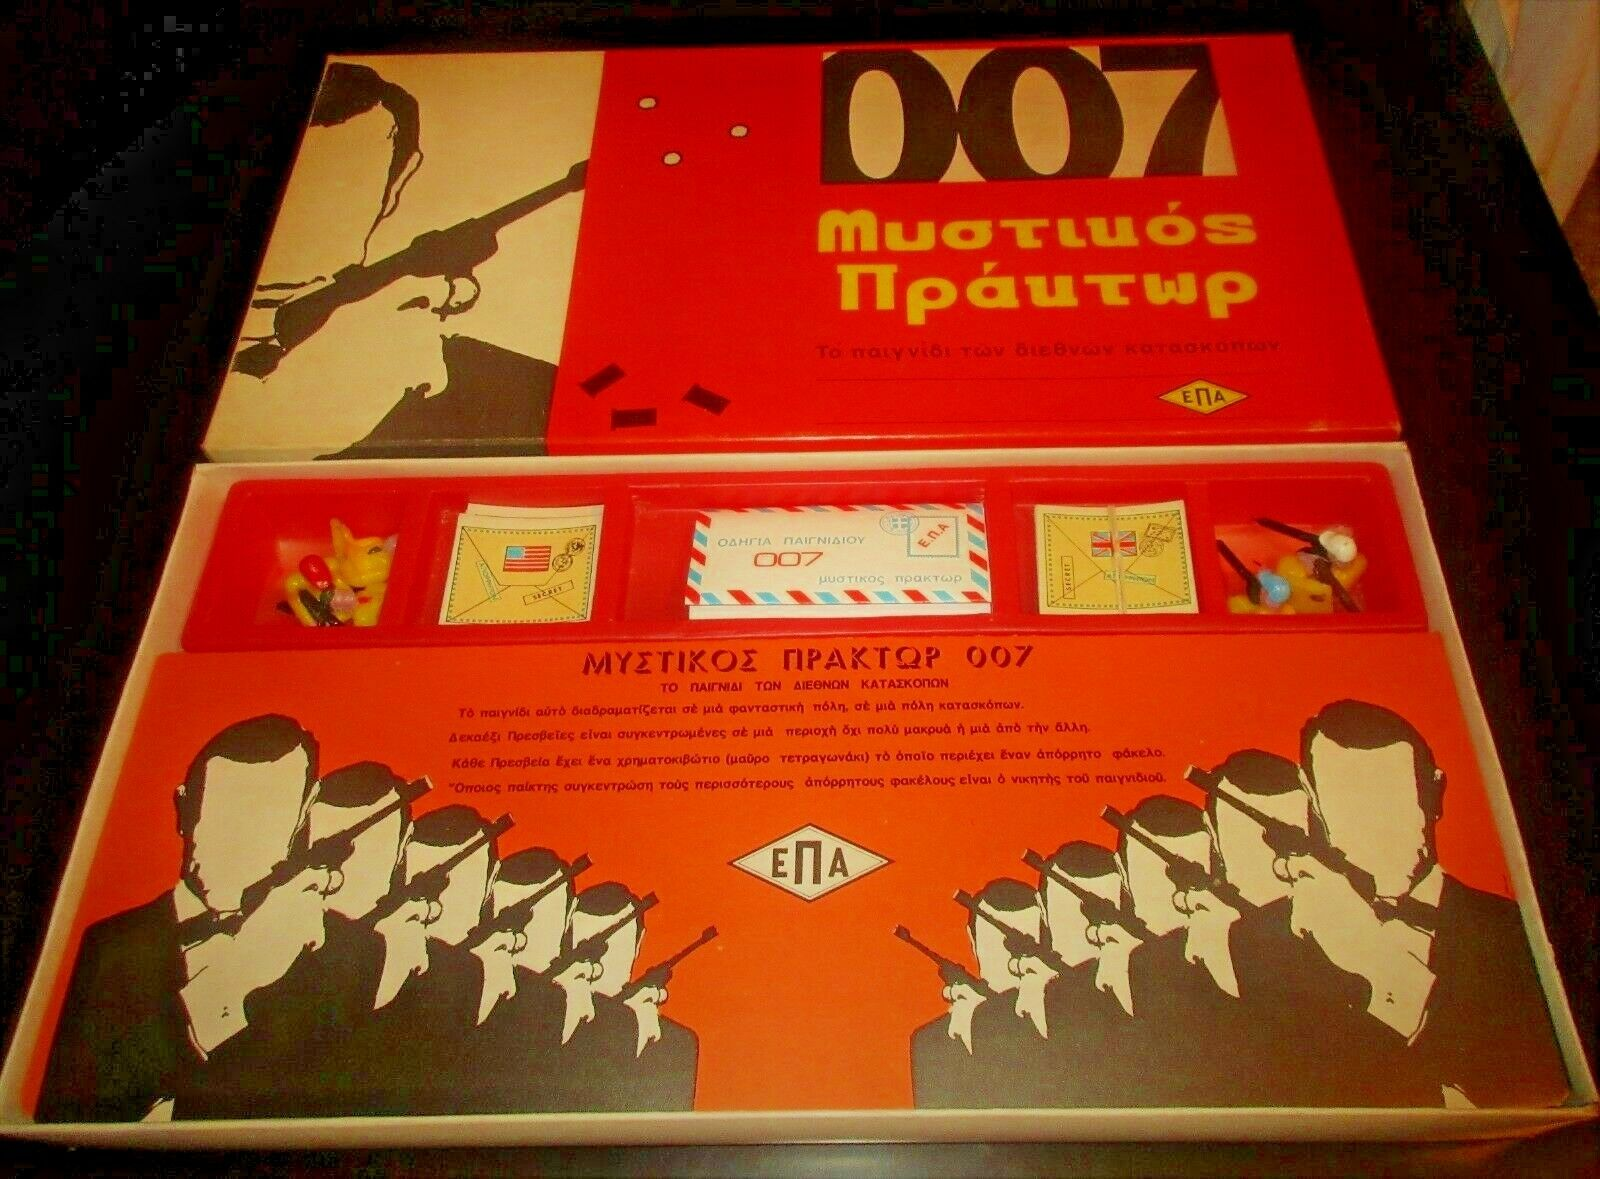 VINTAGE RARE GREEK DETECTIVE BOARD GAME JAMES BOND - SEGRET AGENT OO7 - FROM 70s